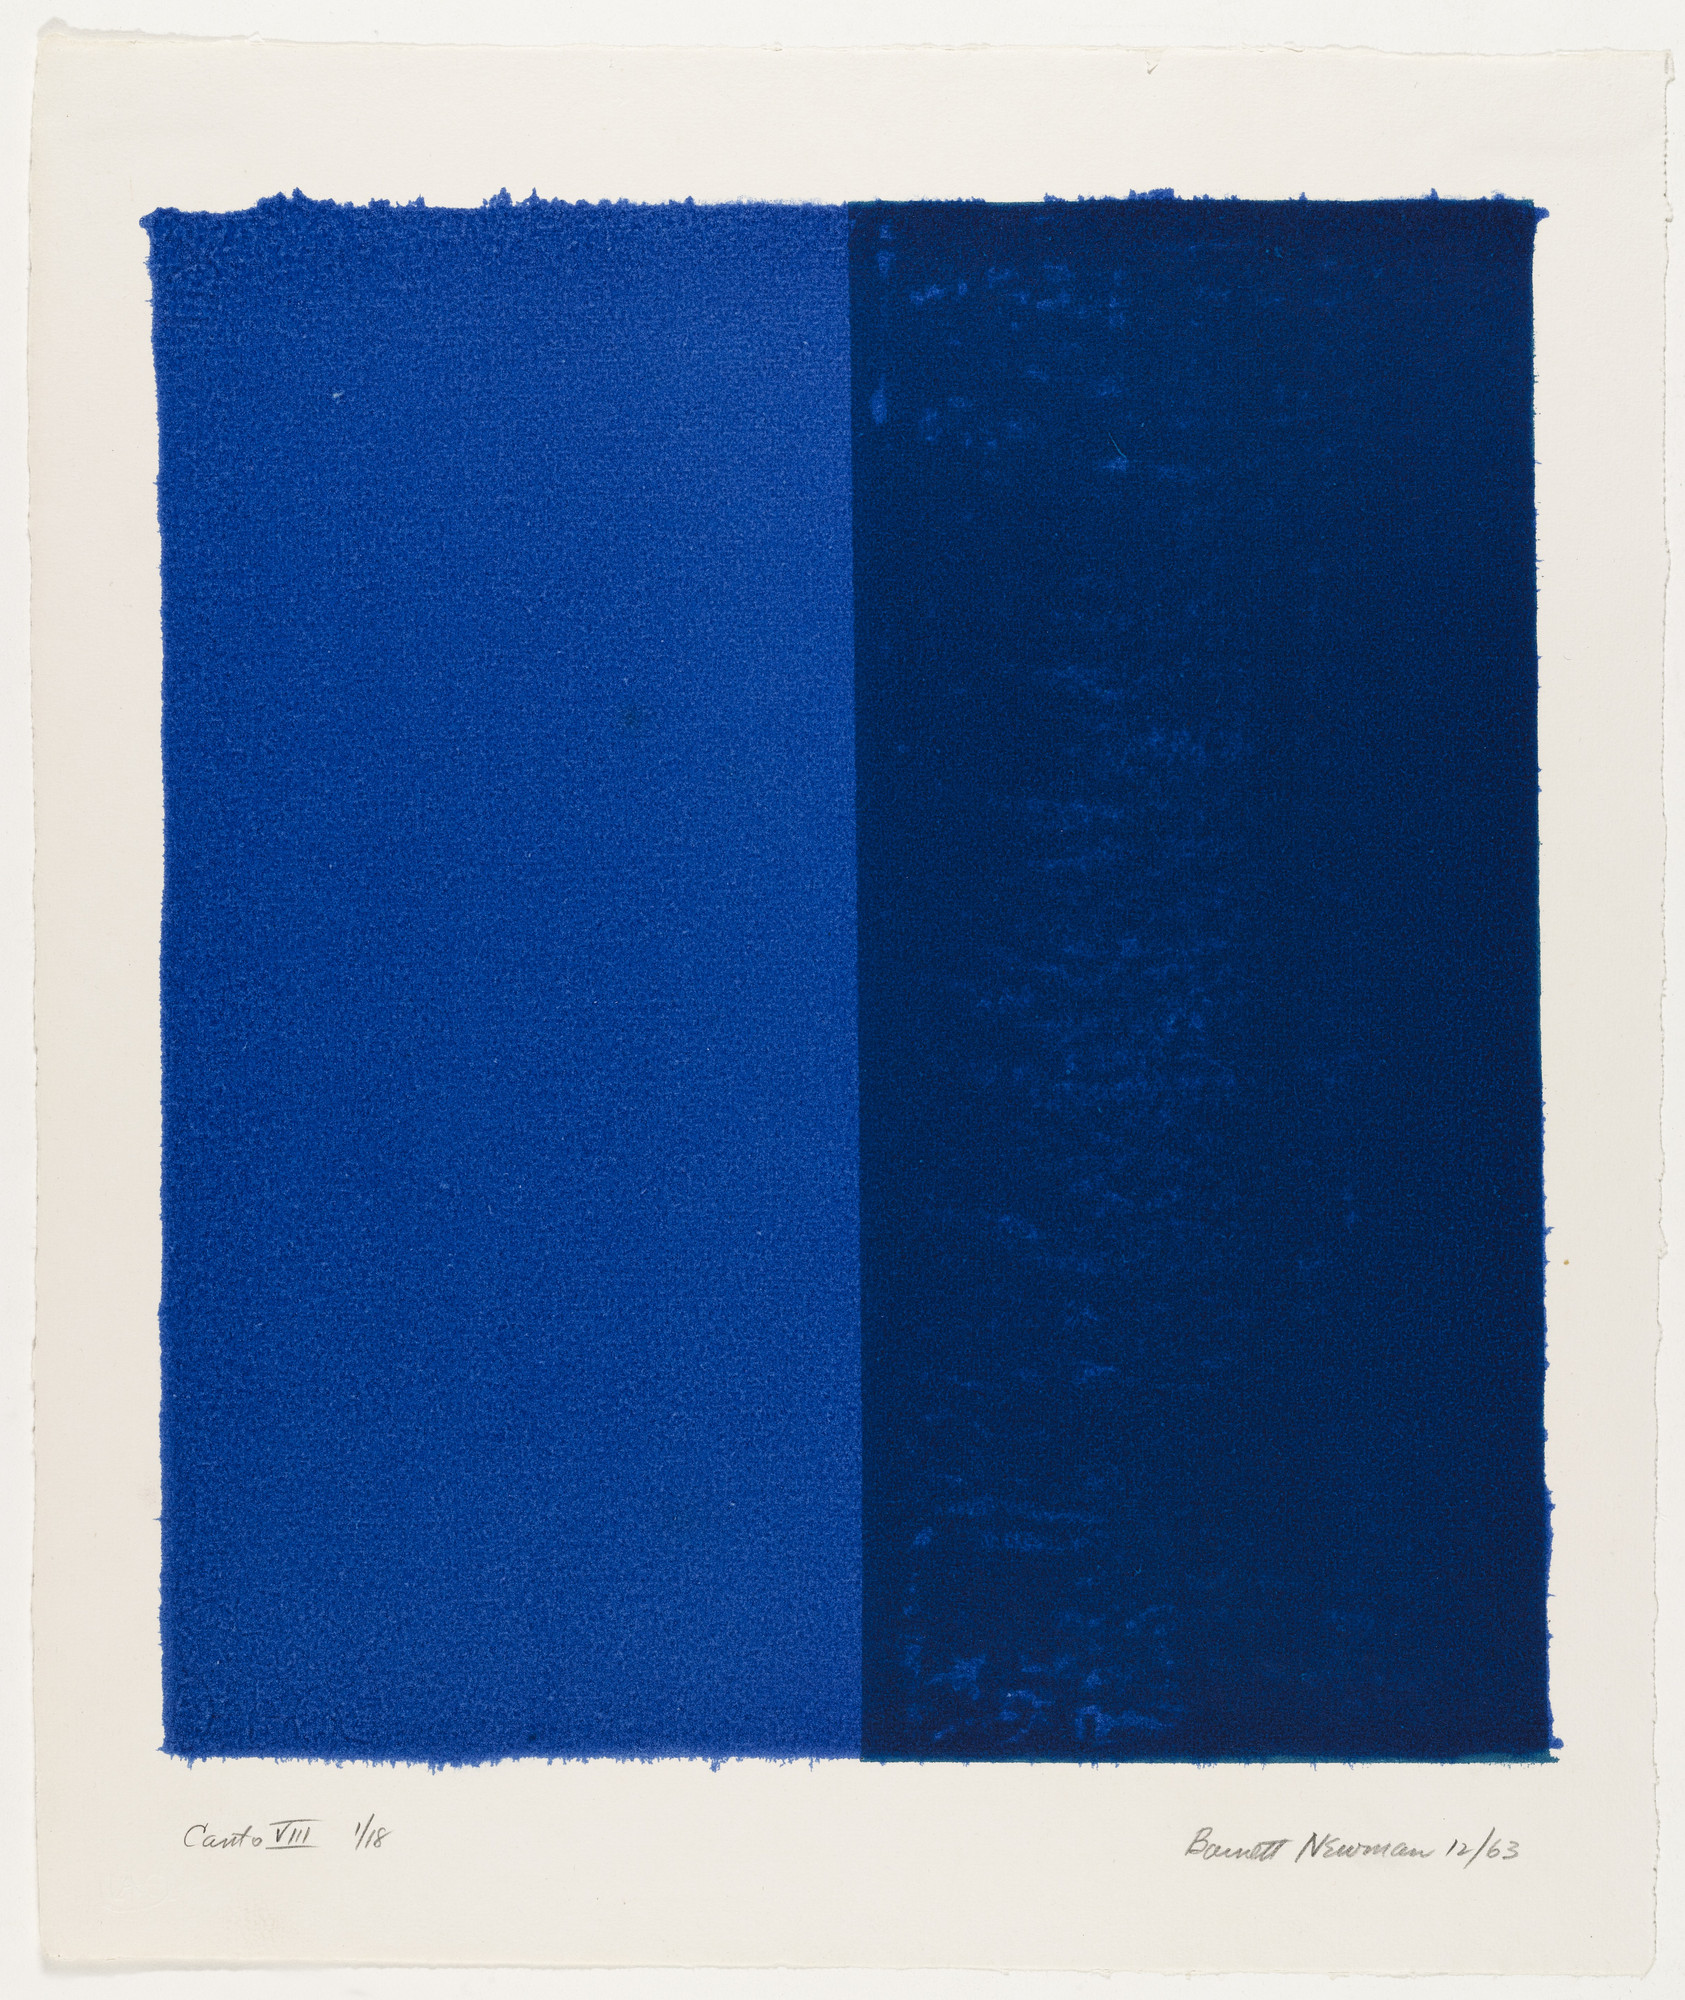 Barnett Newman. Canto VIII from 18 Cantos. 1963